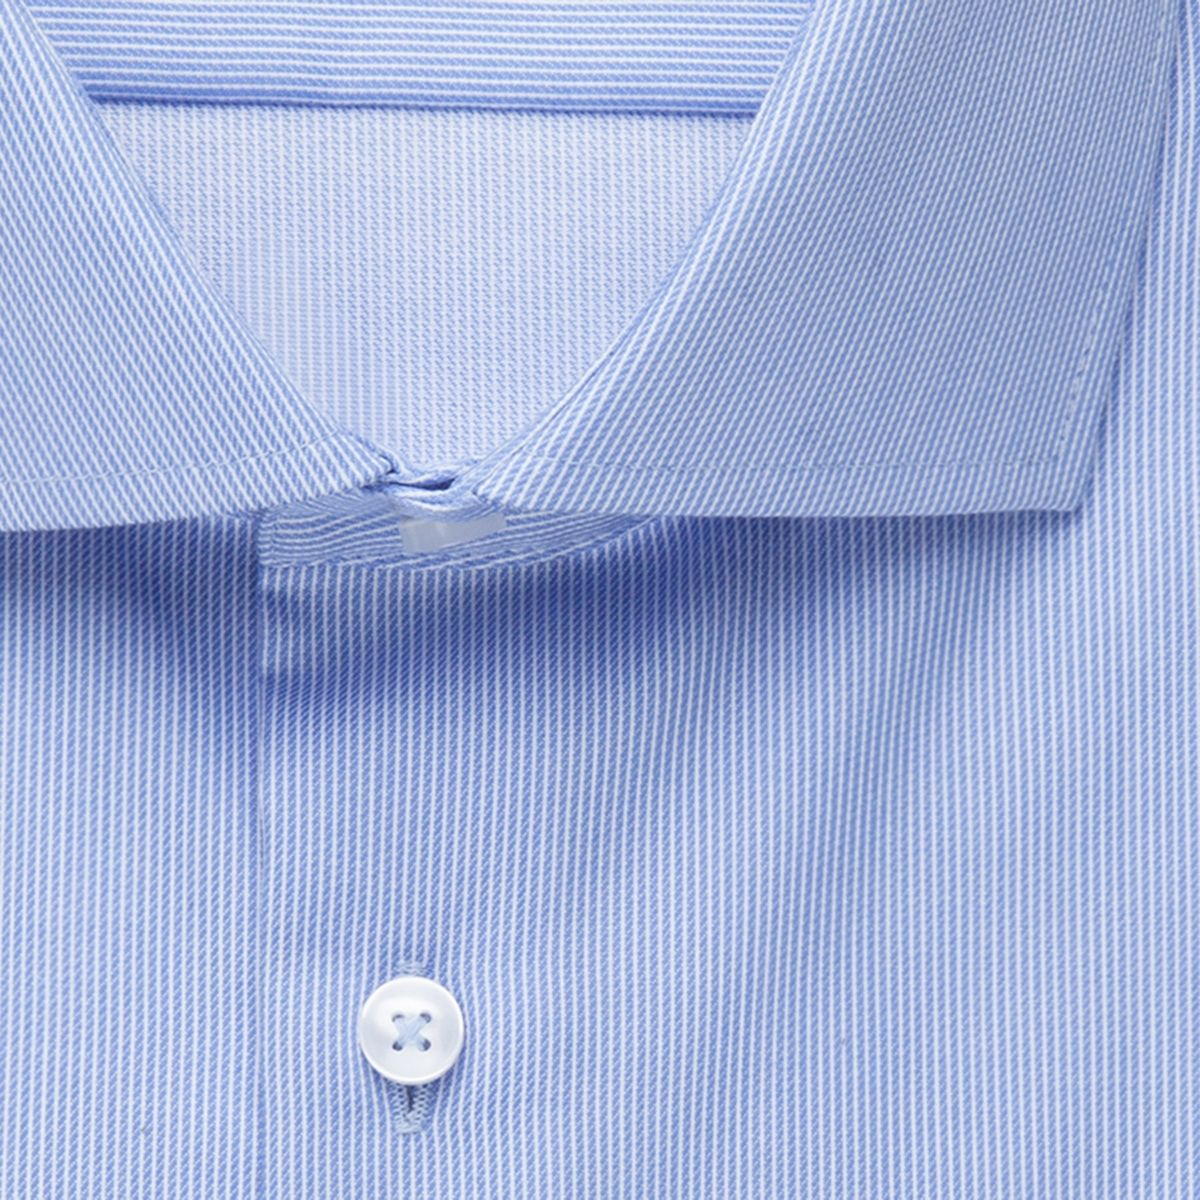 Chemise extra-slim fines rayures bleu ciel twill